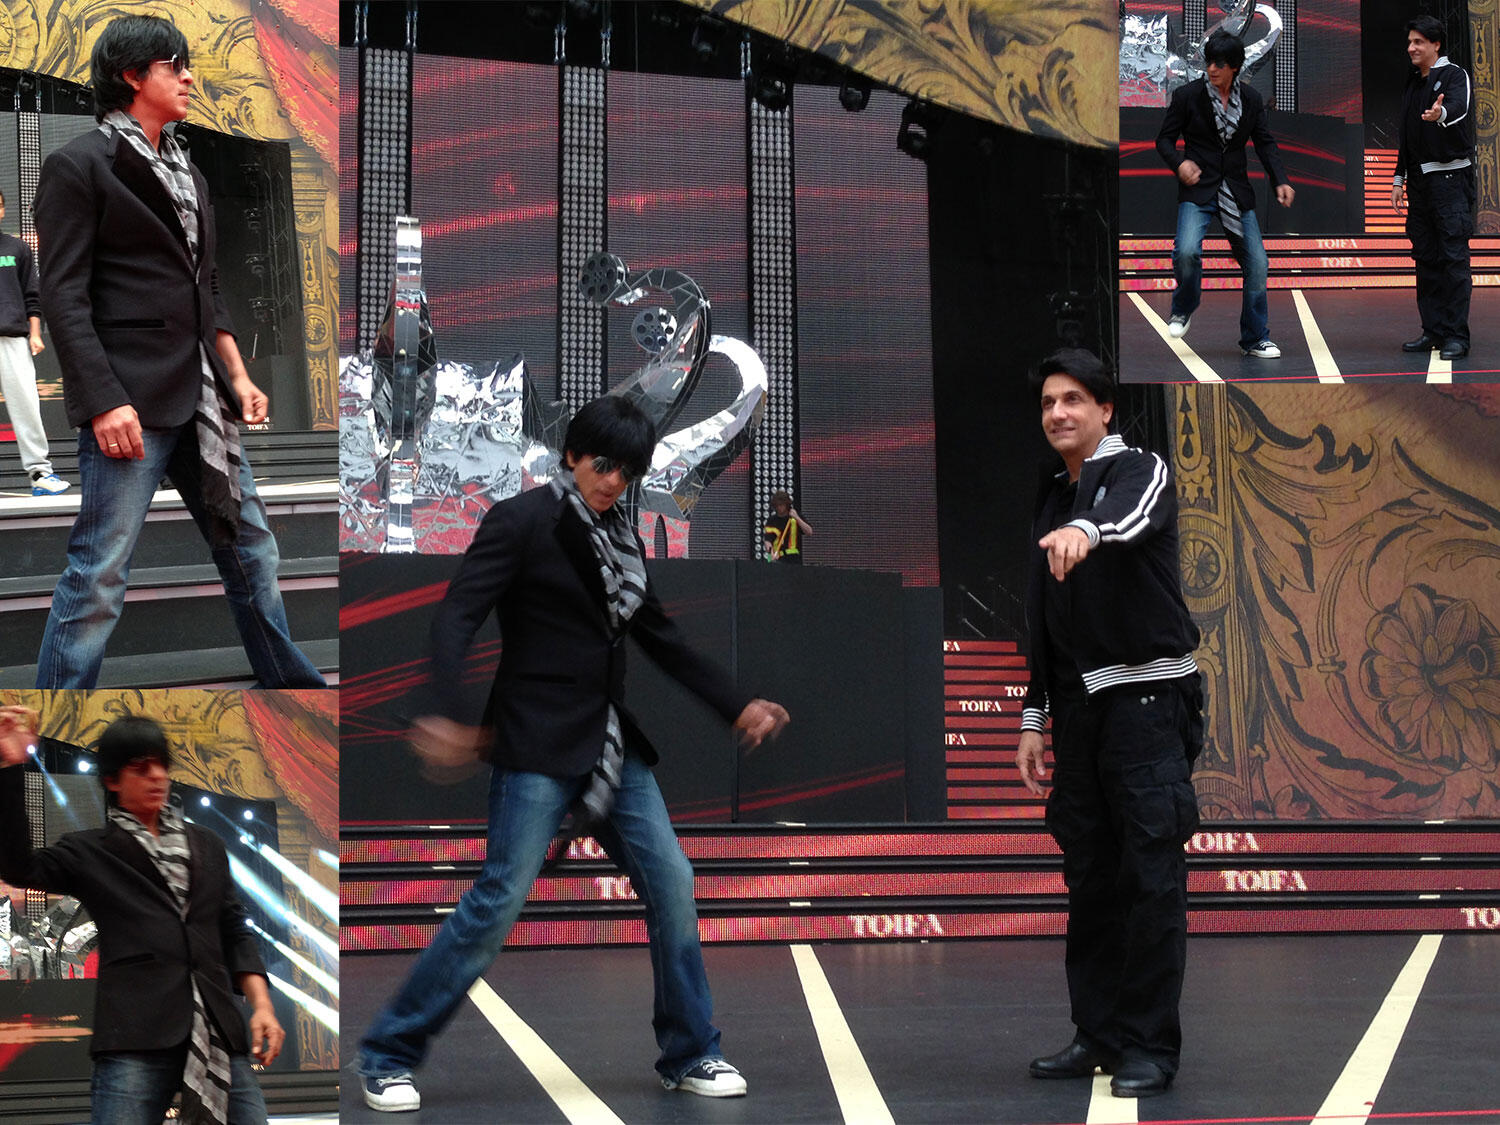 Twitter / iamsrkclub: SRK working hard for the fans ...